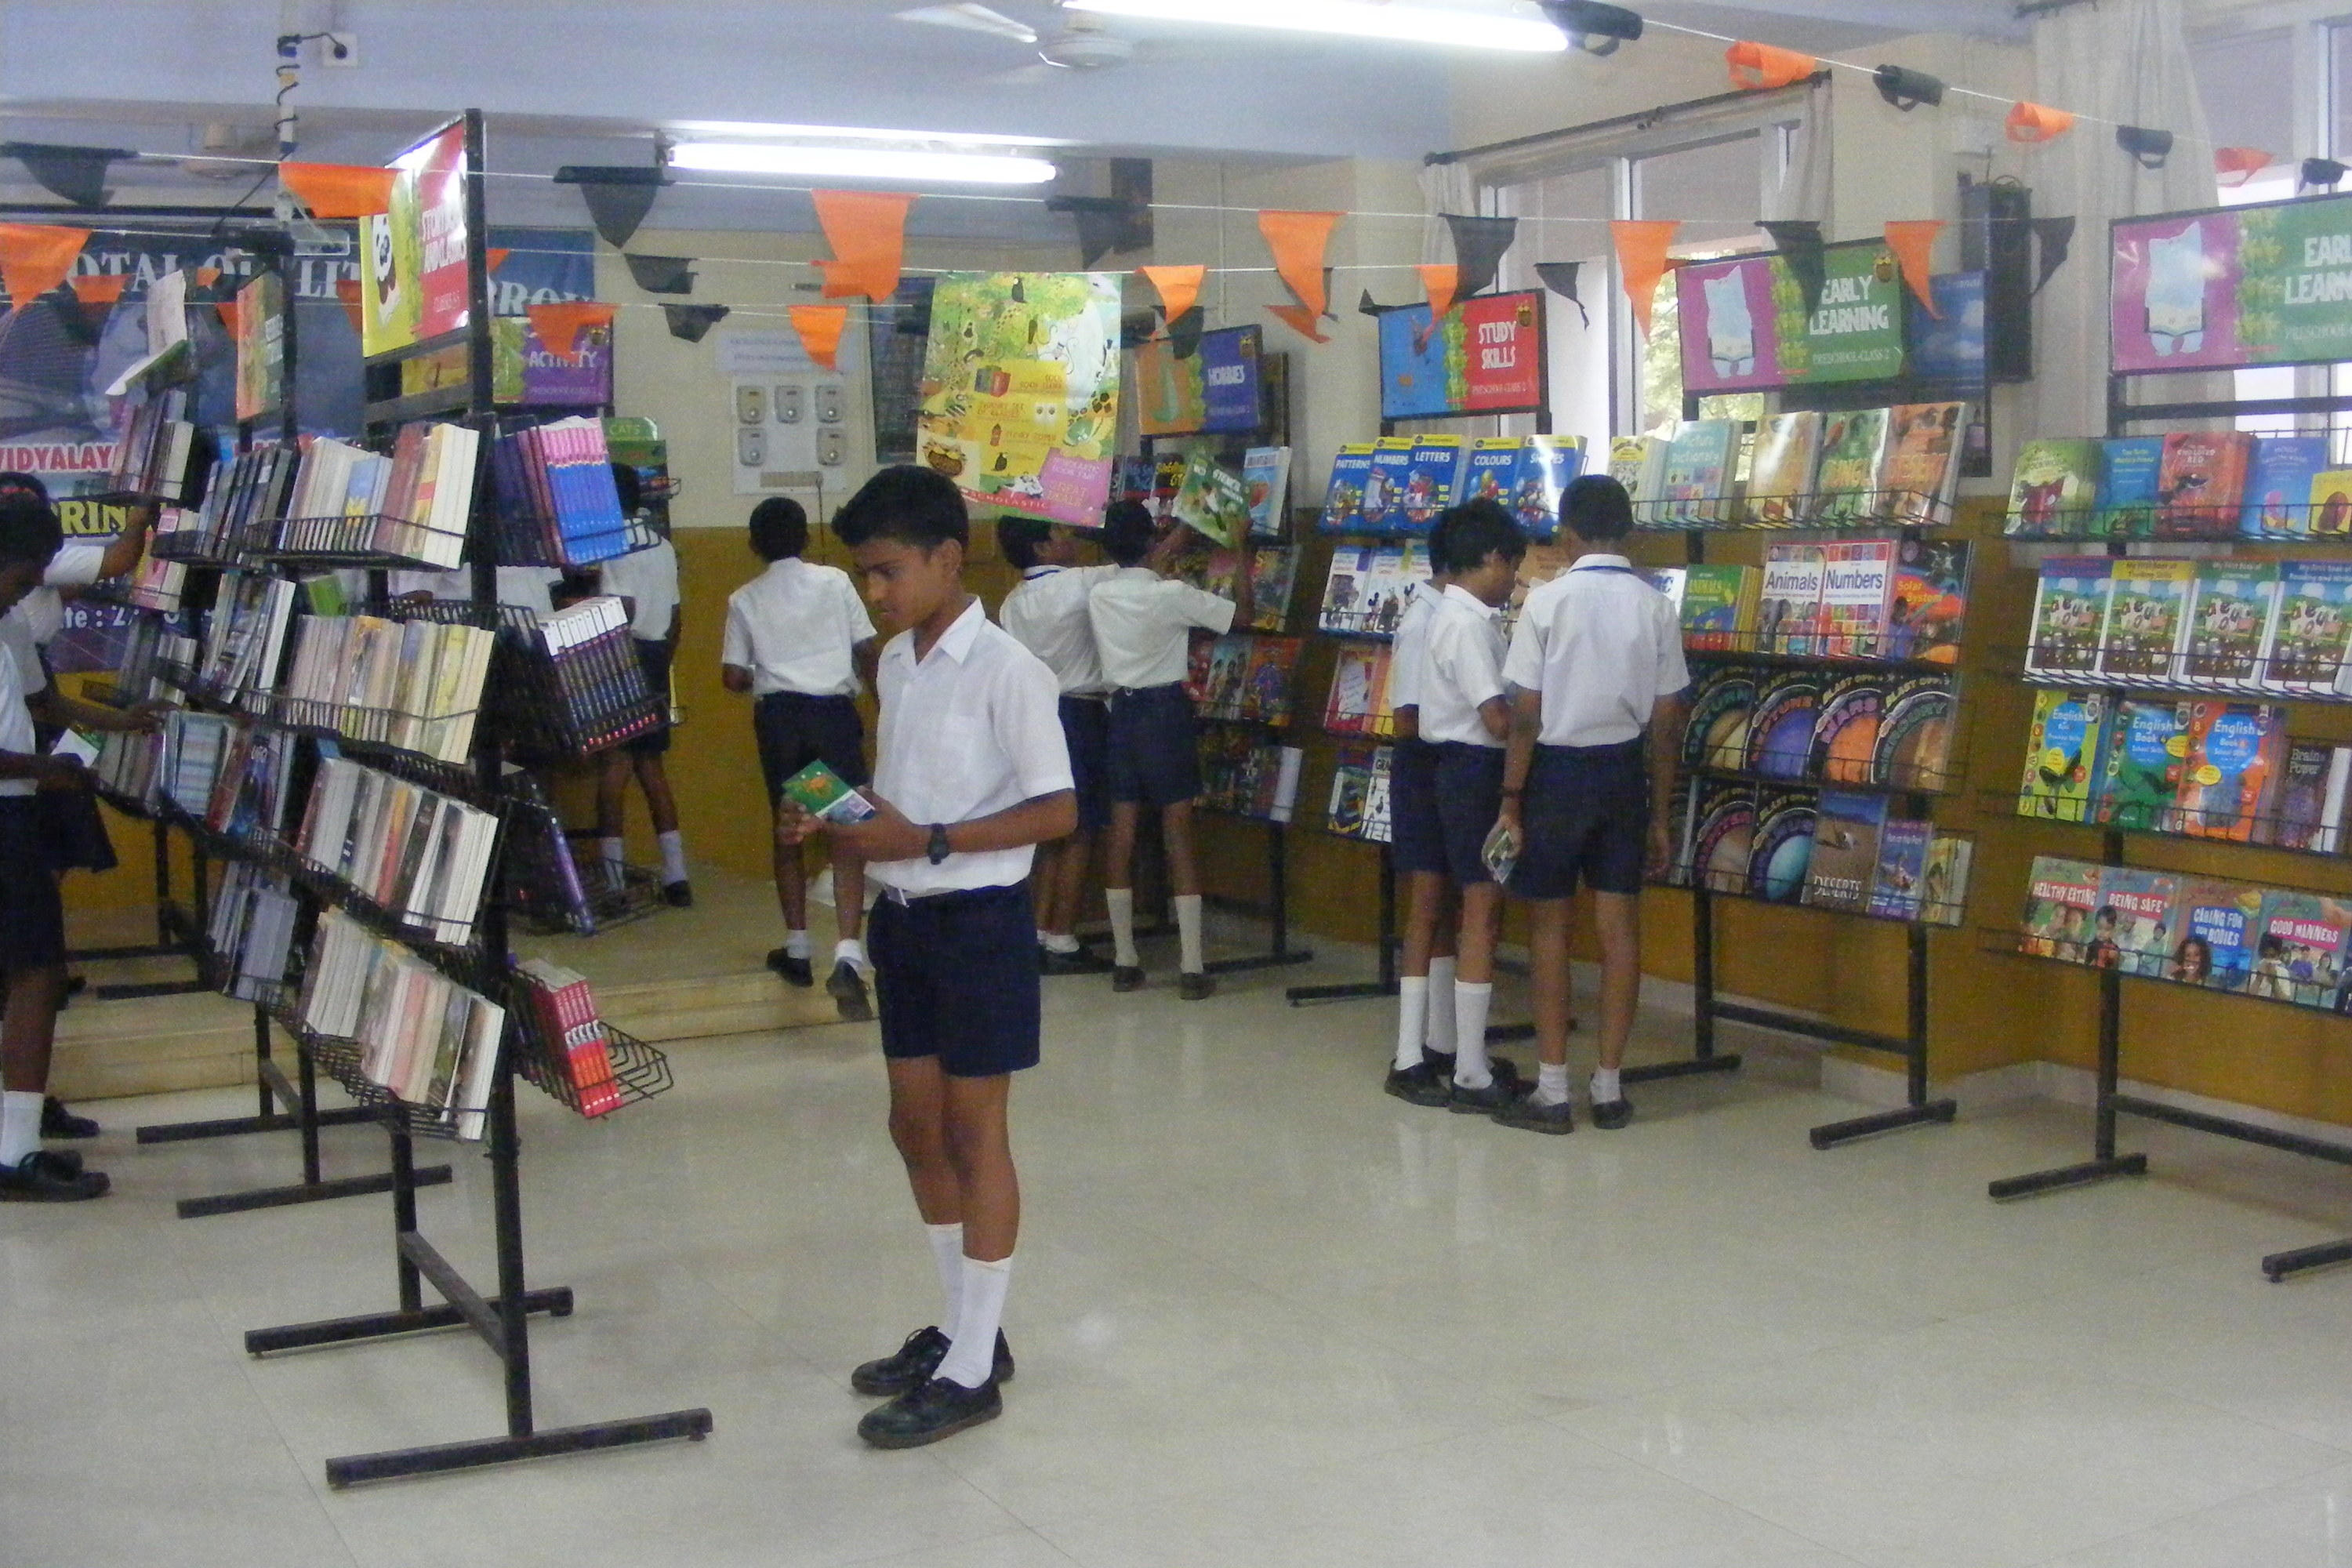 Image of a Scholastic Book Fair in an Indian school.